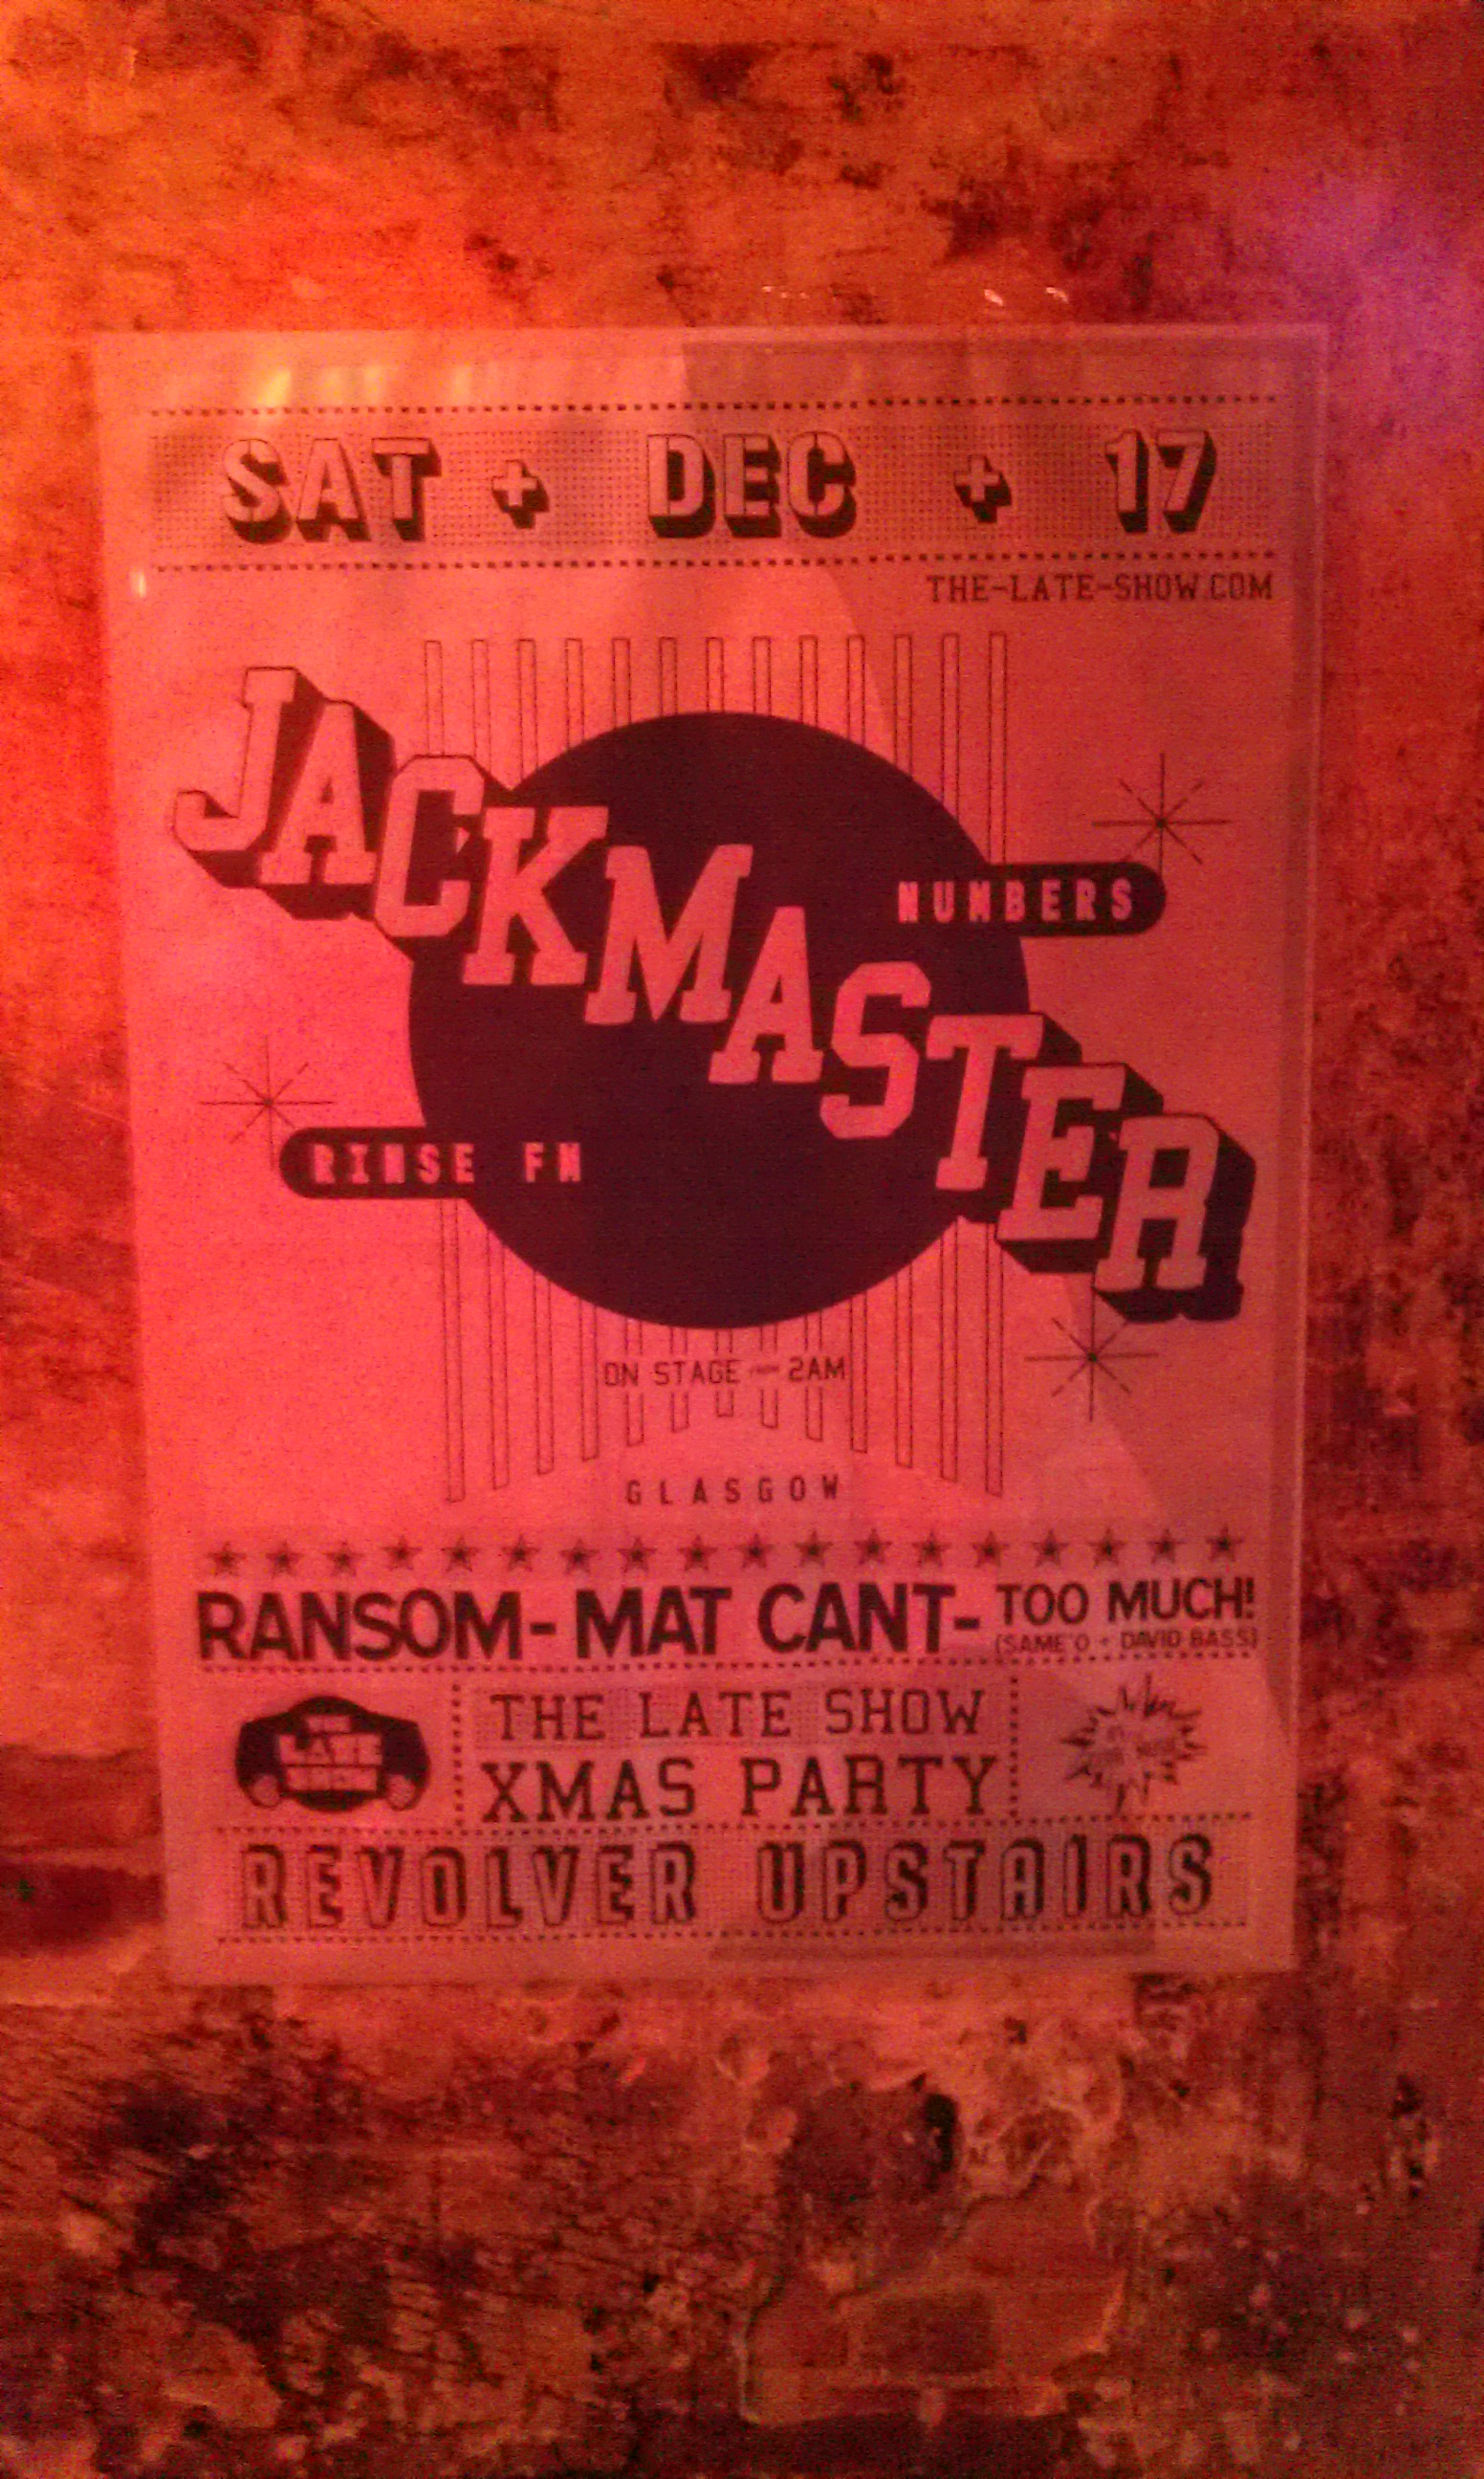 Jackmaster - BnW - Poster - 2